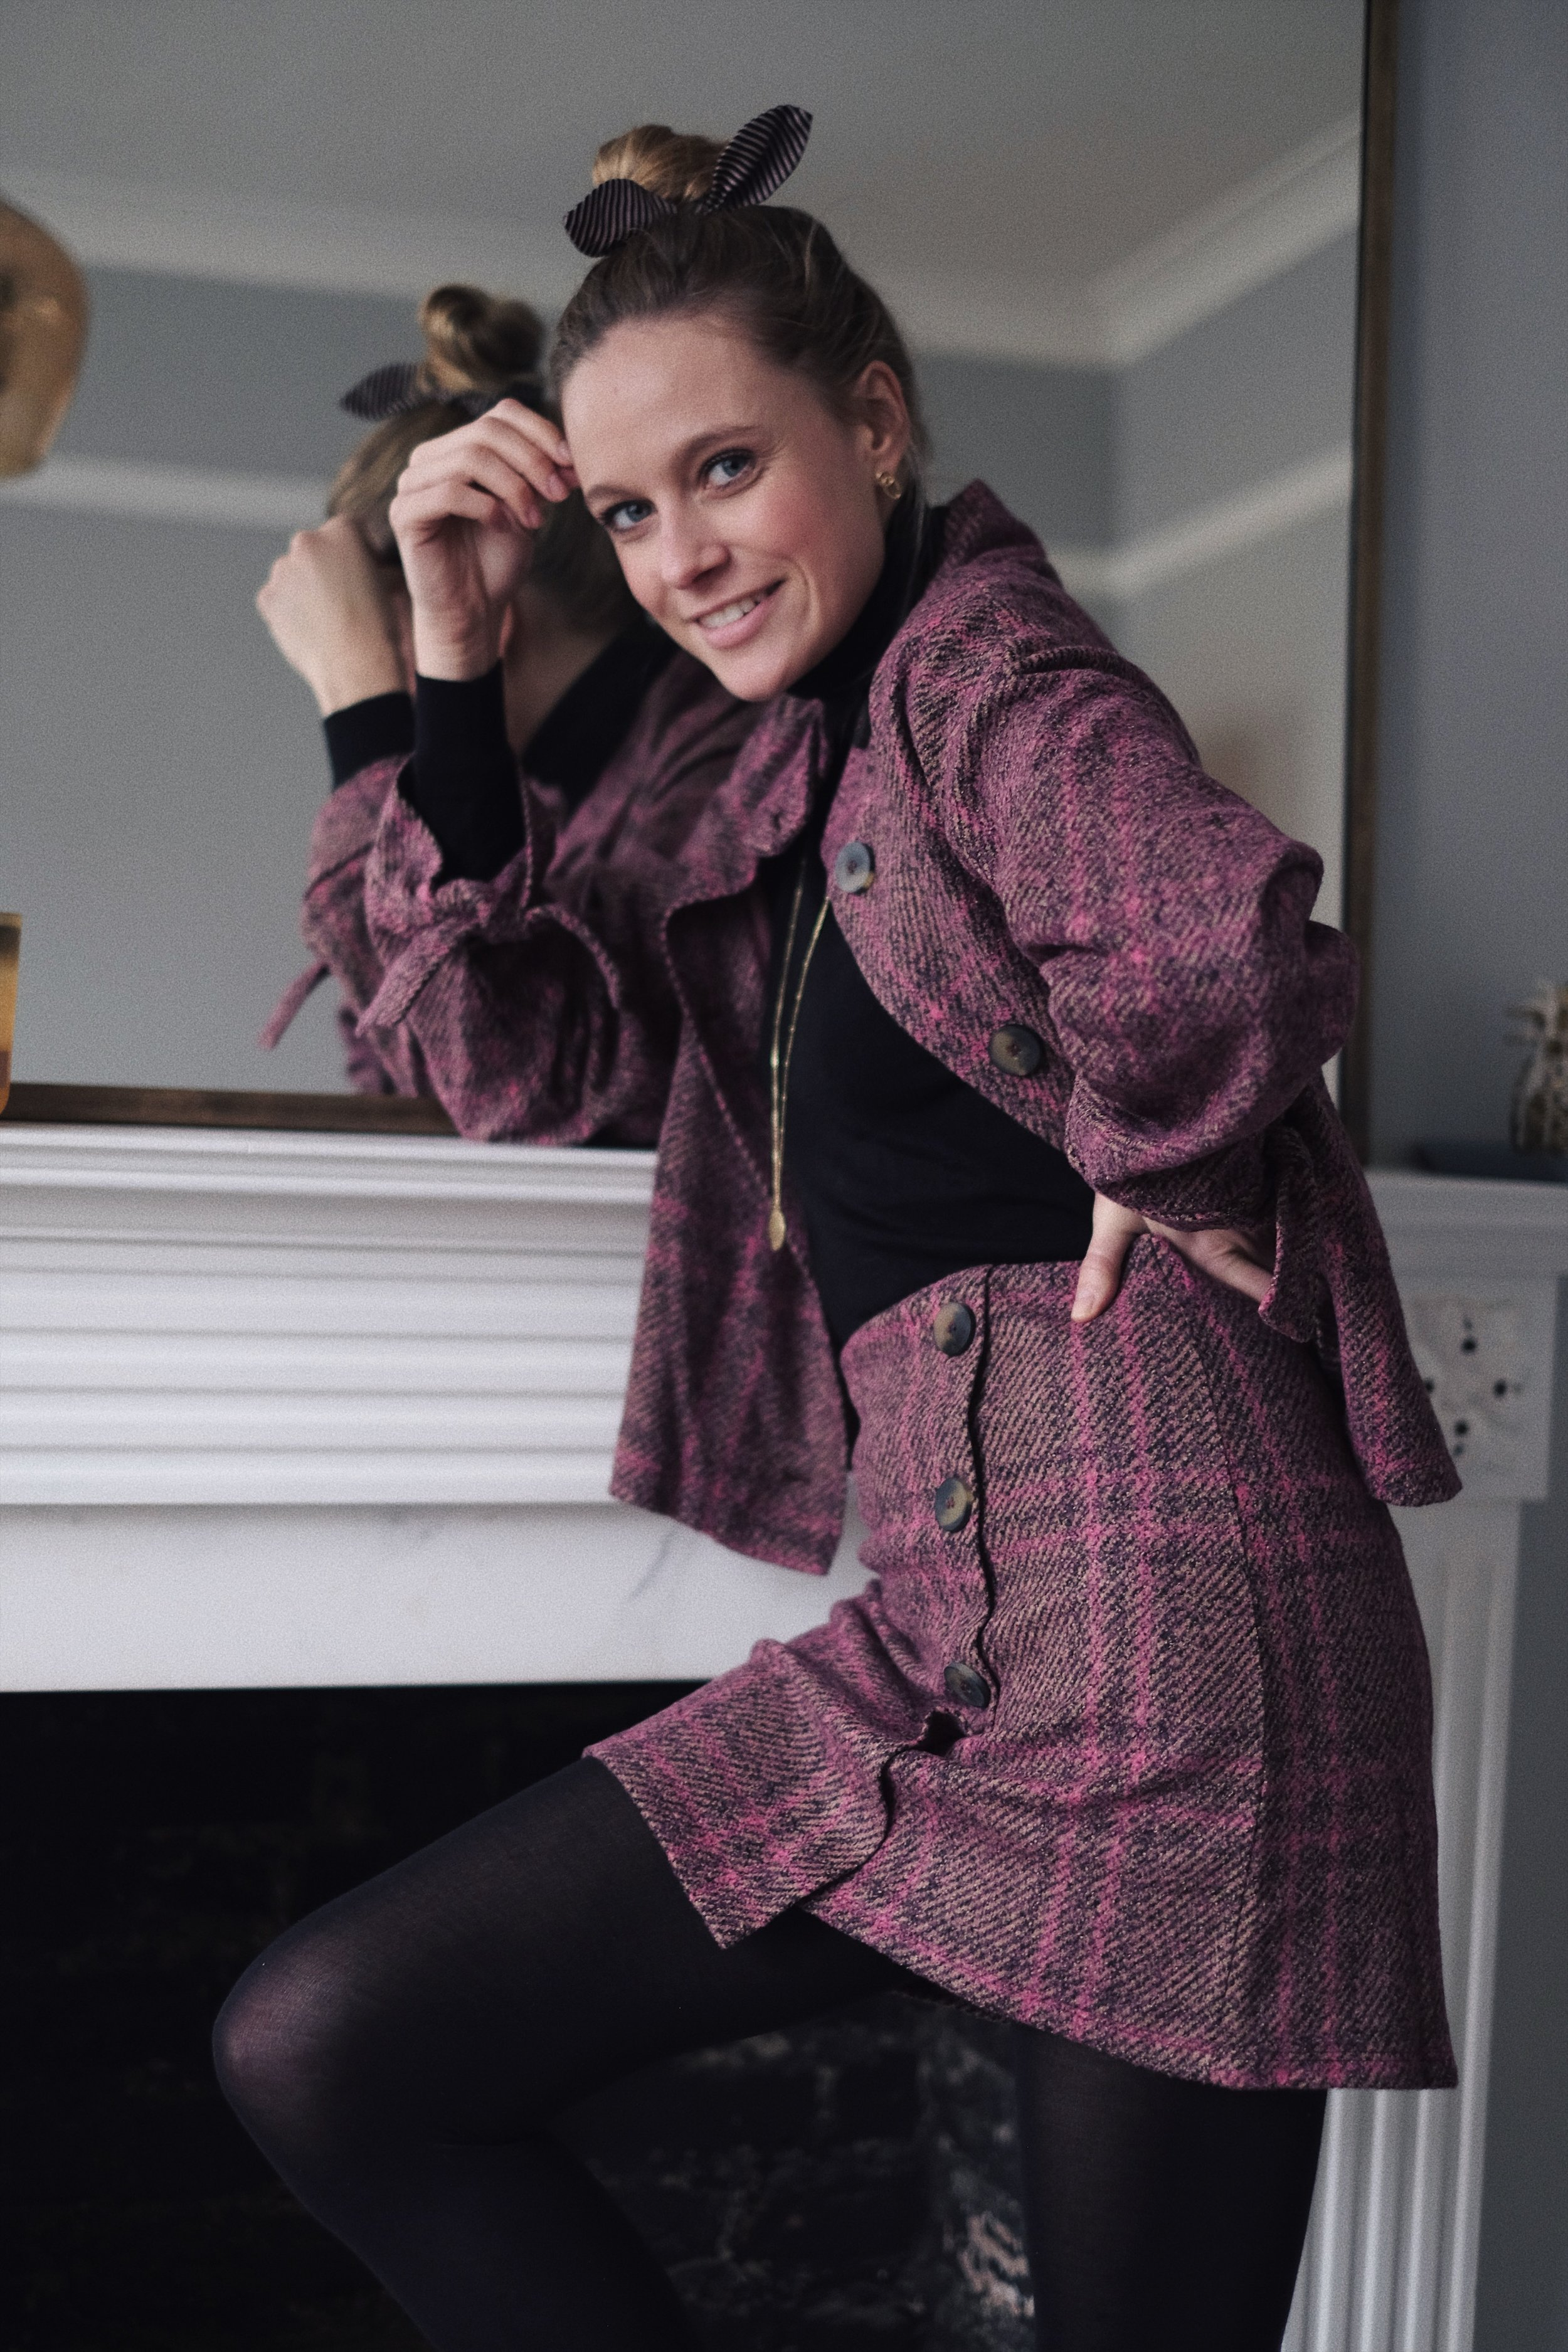 London based model Annabell is wearing a two-piece set blazer and skirt rom Mango